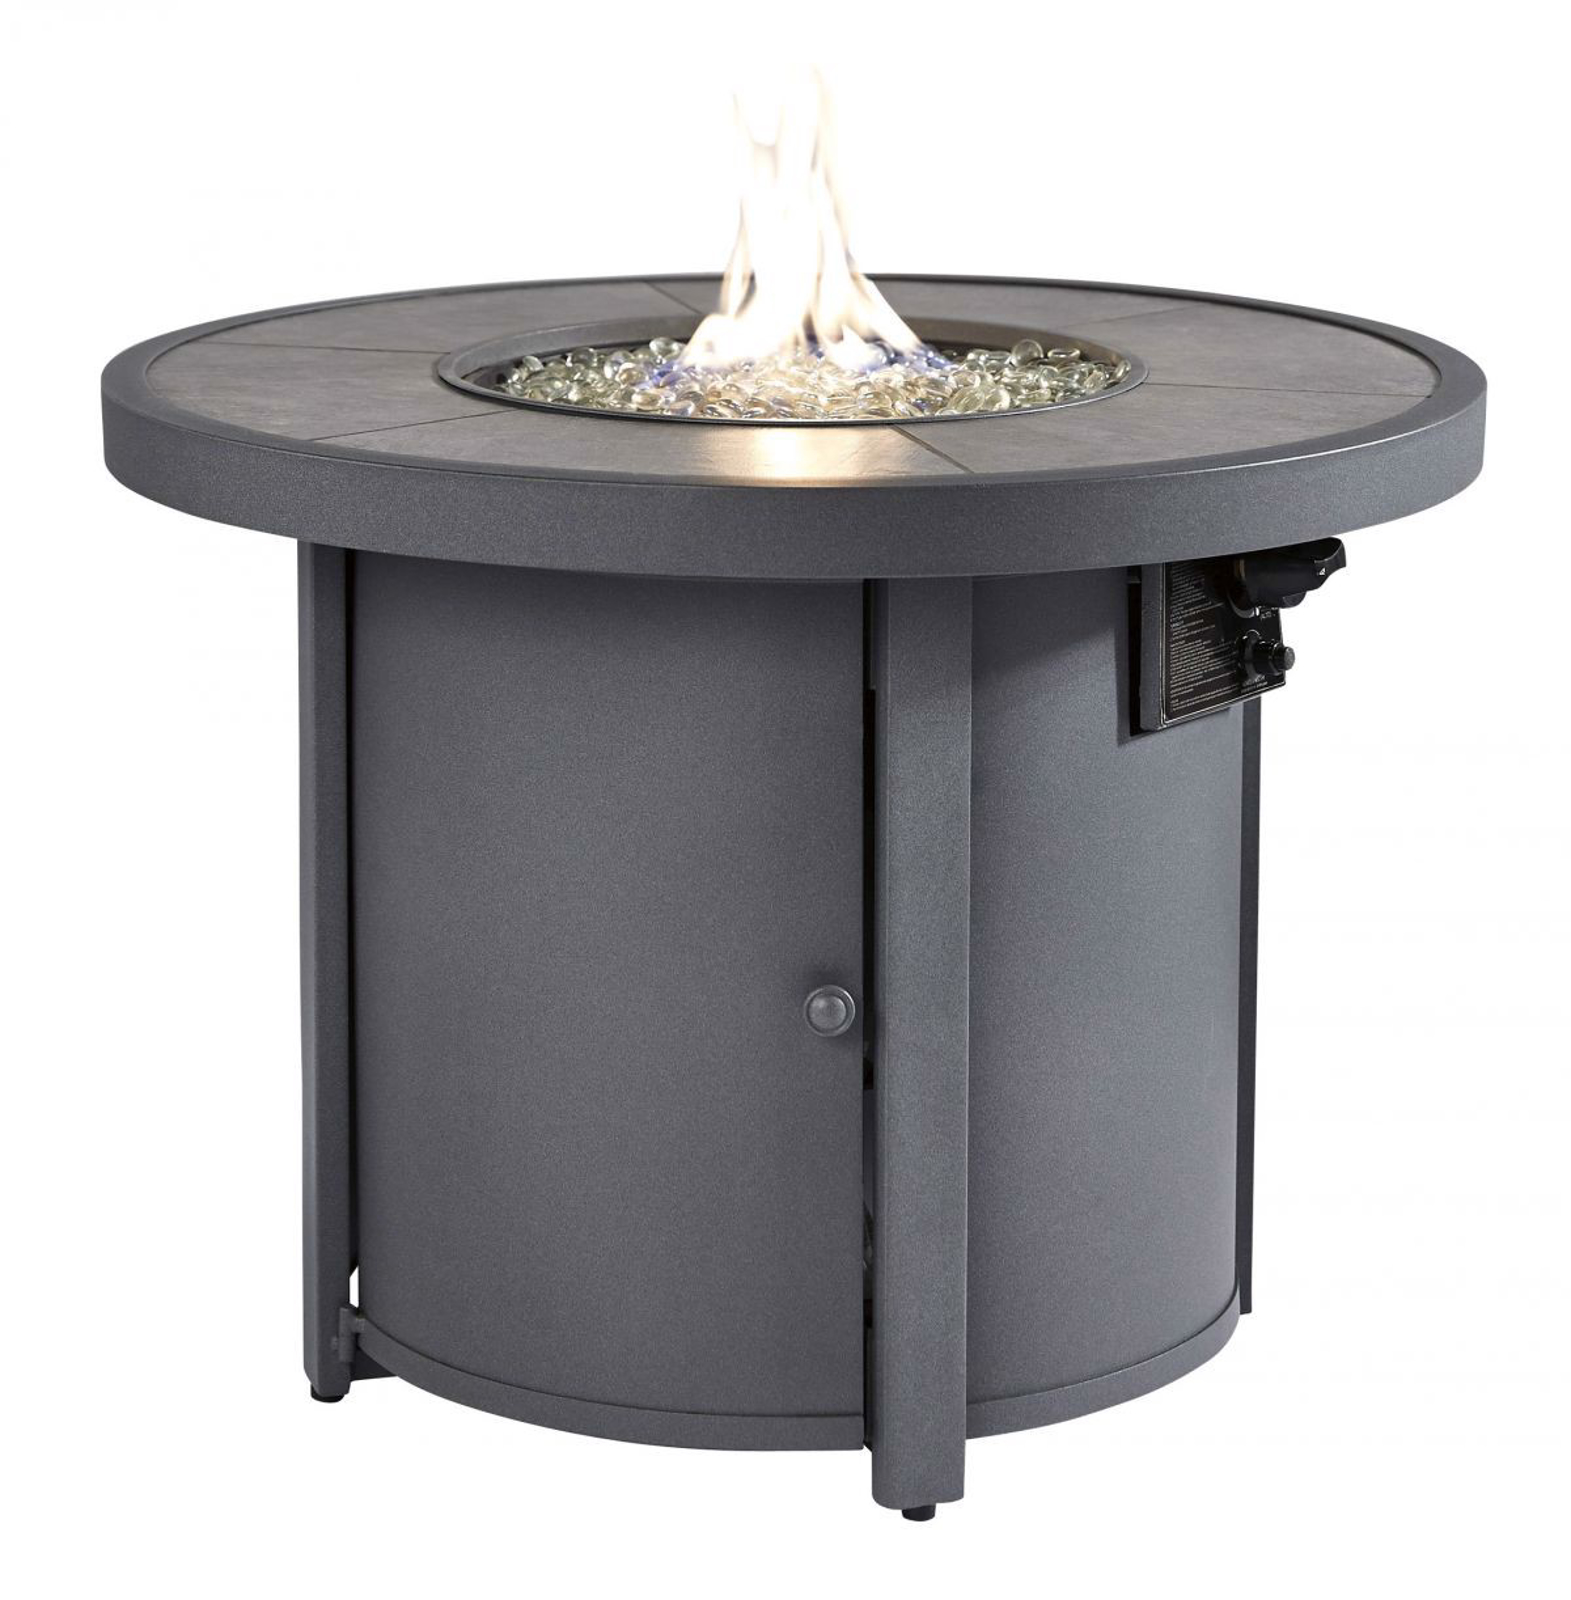 Picture of Donnalee Bay Patio Fire Pit Table